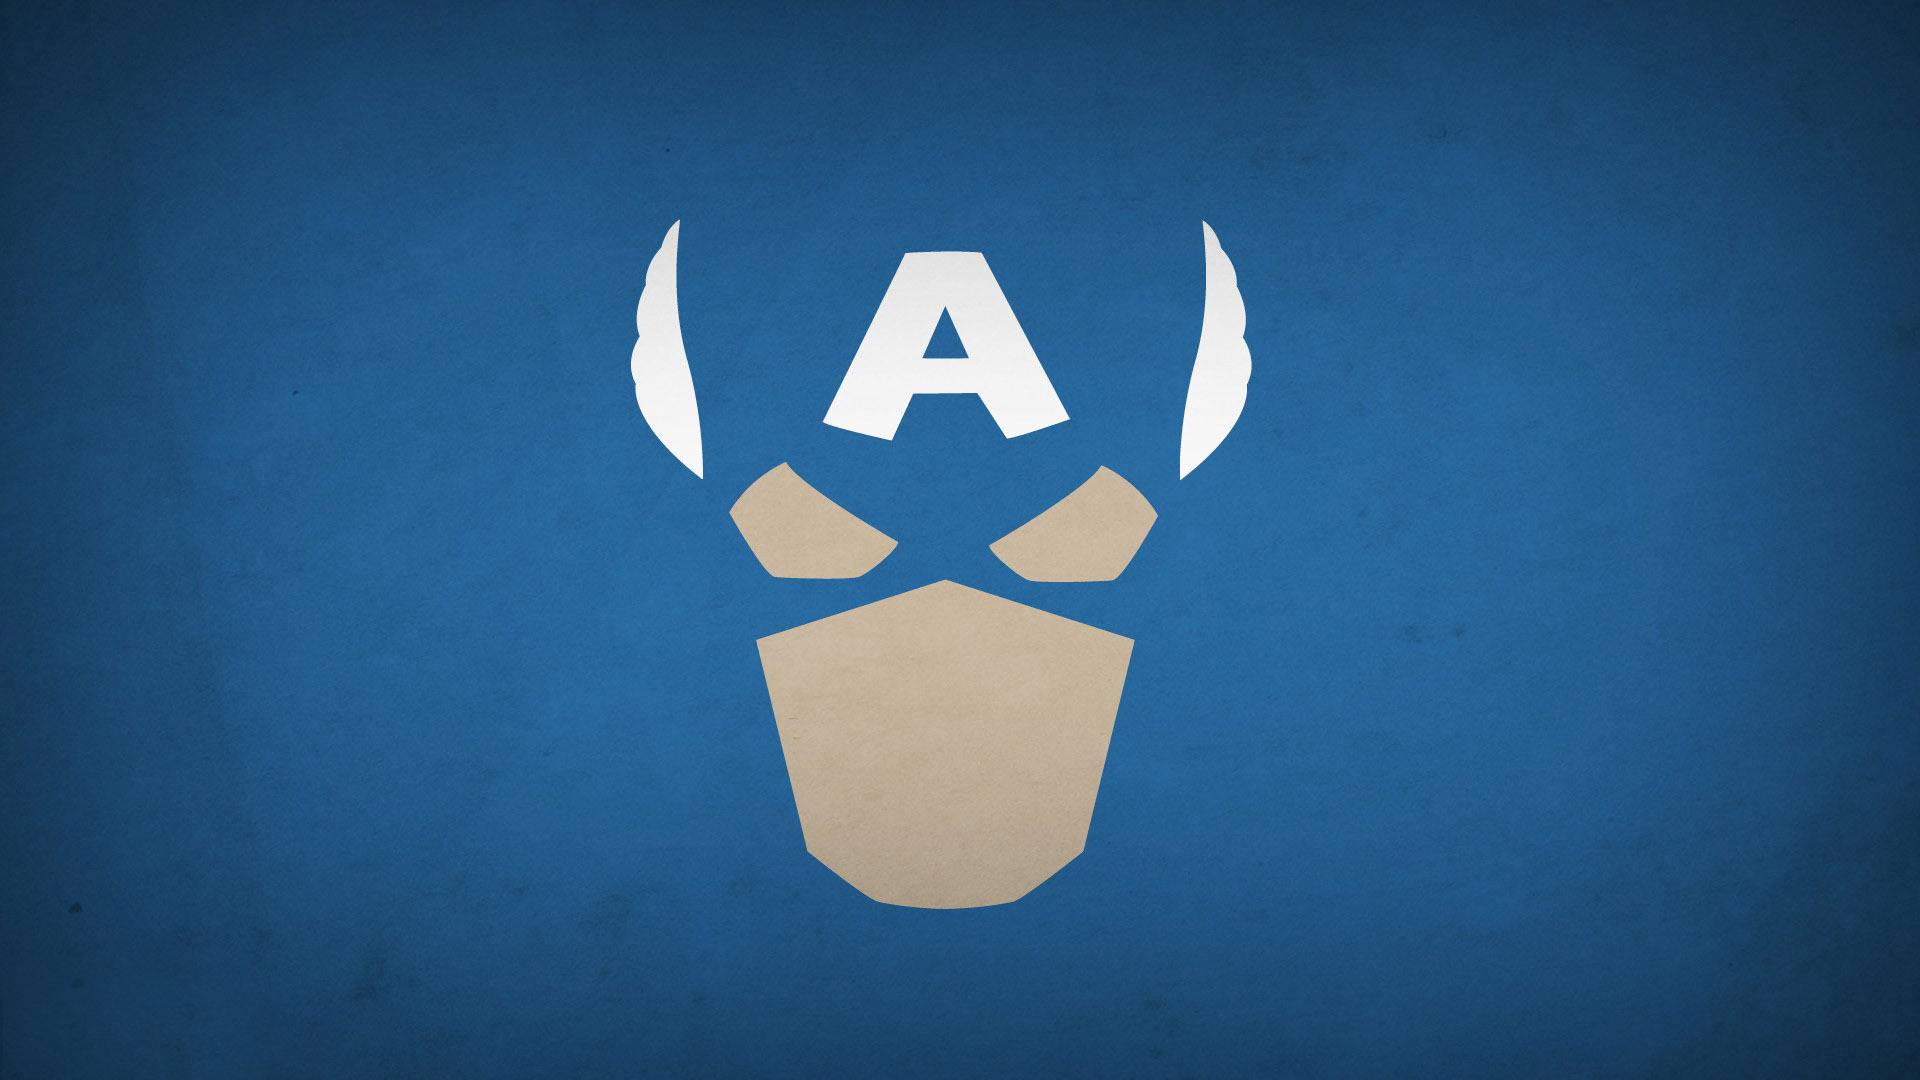 captain america wallpaper for desktop